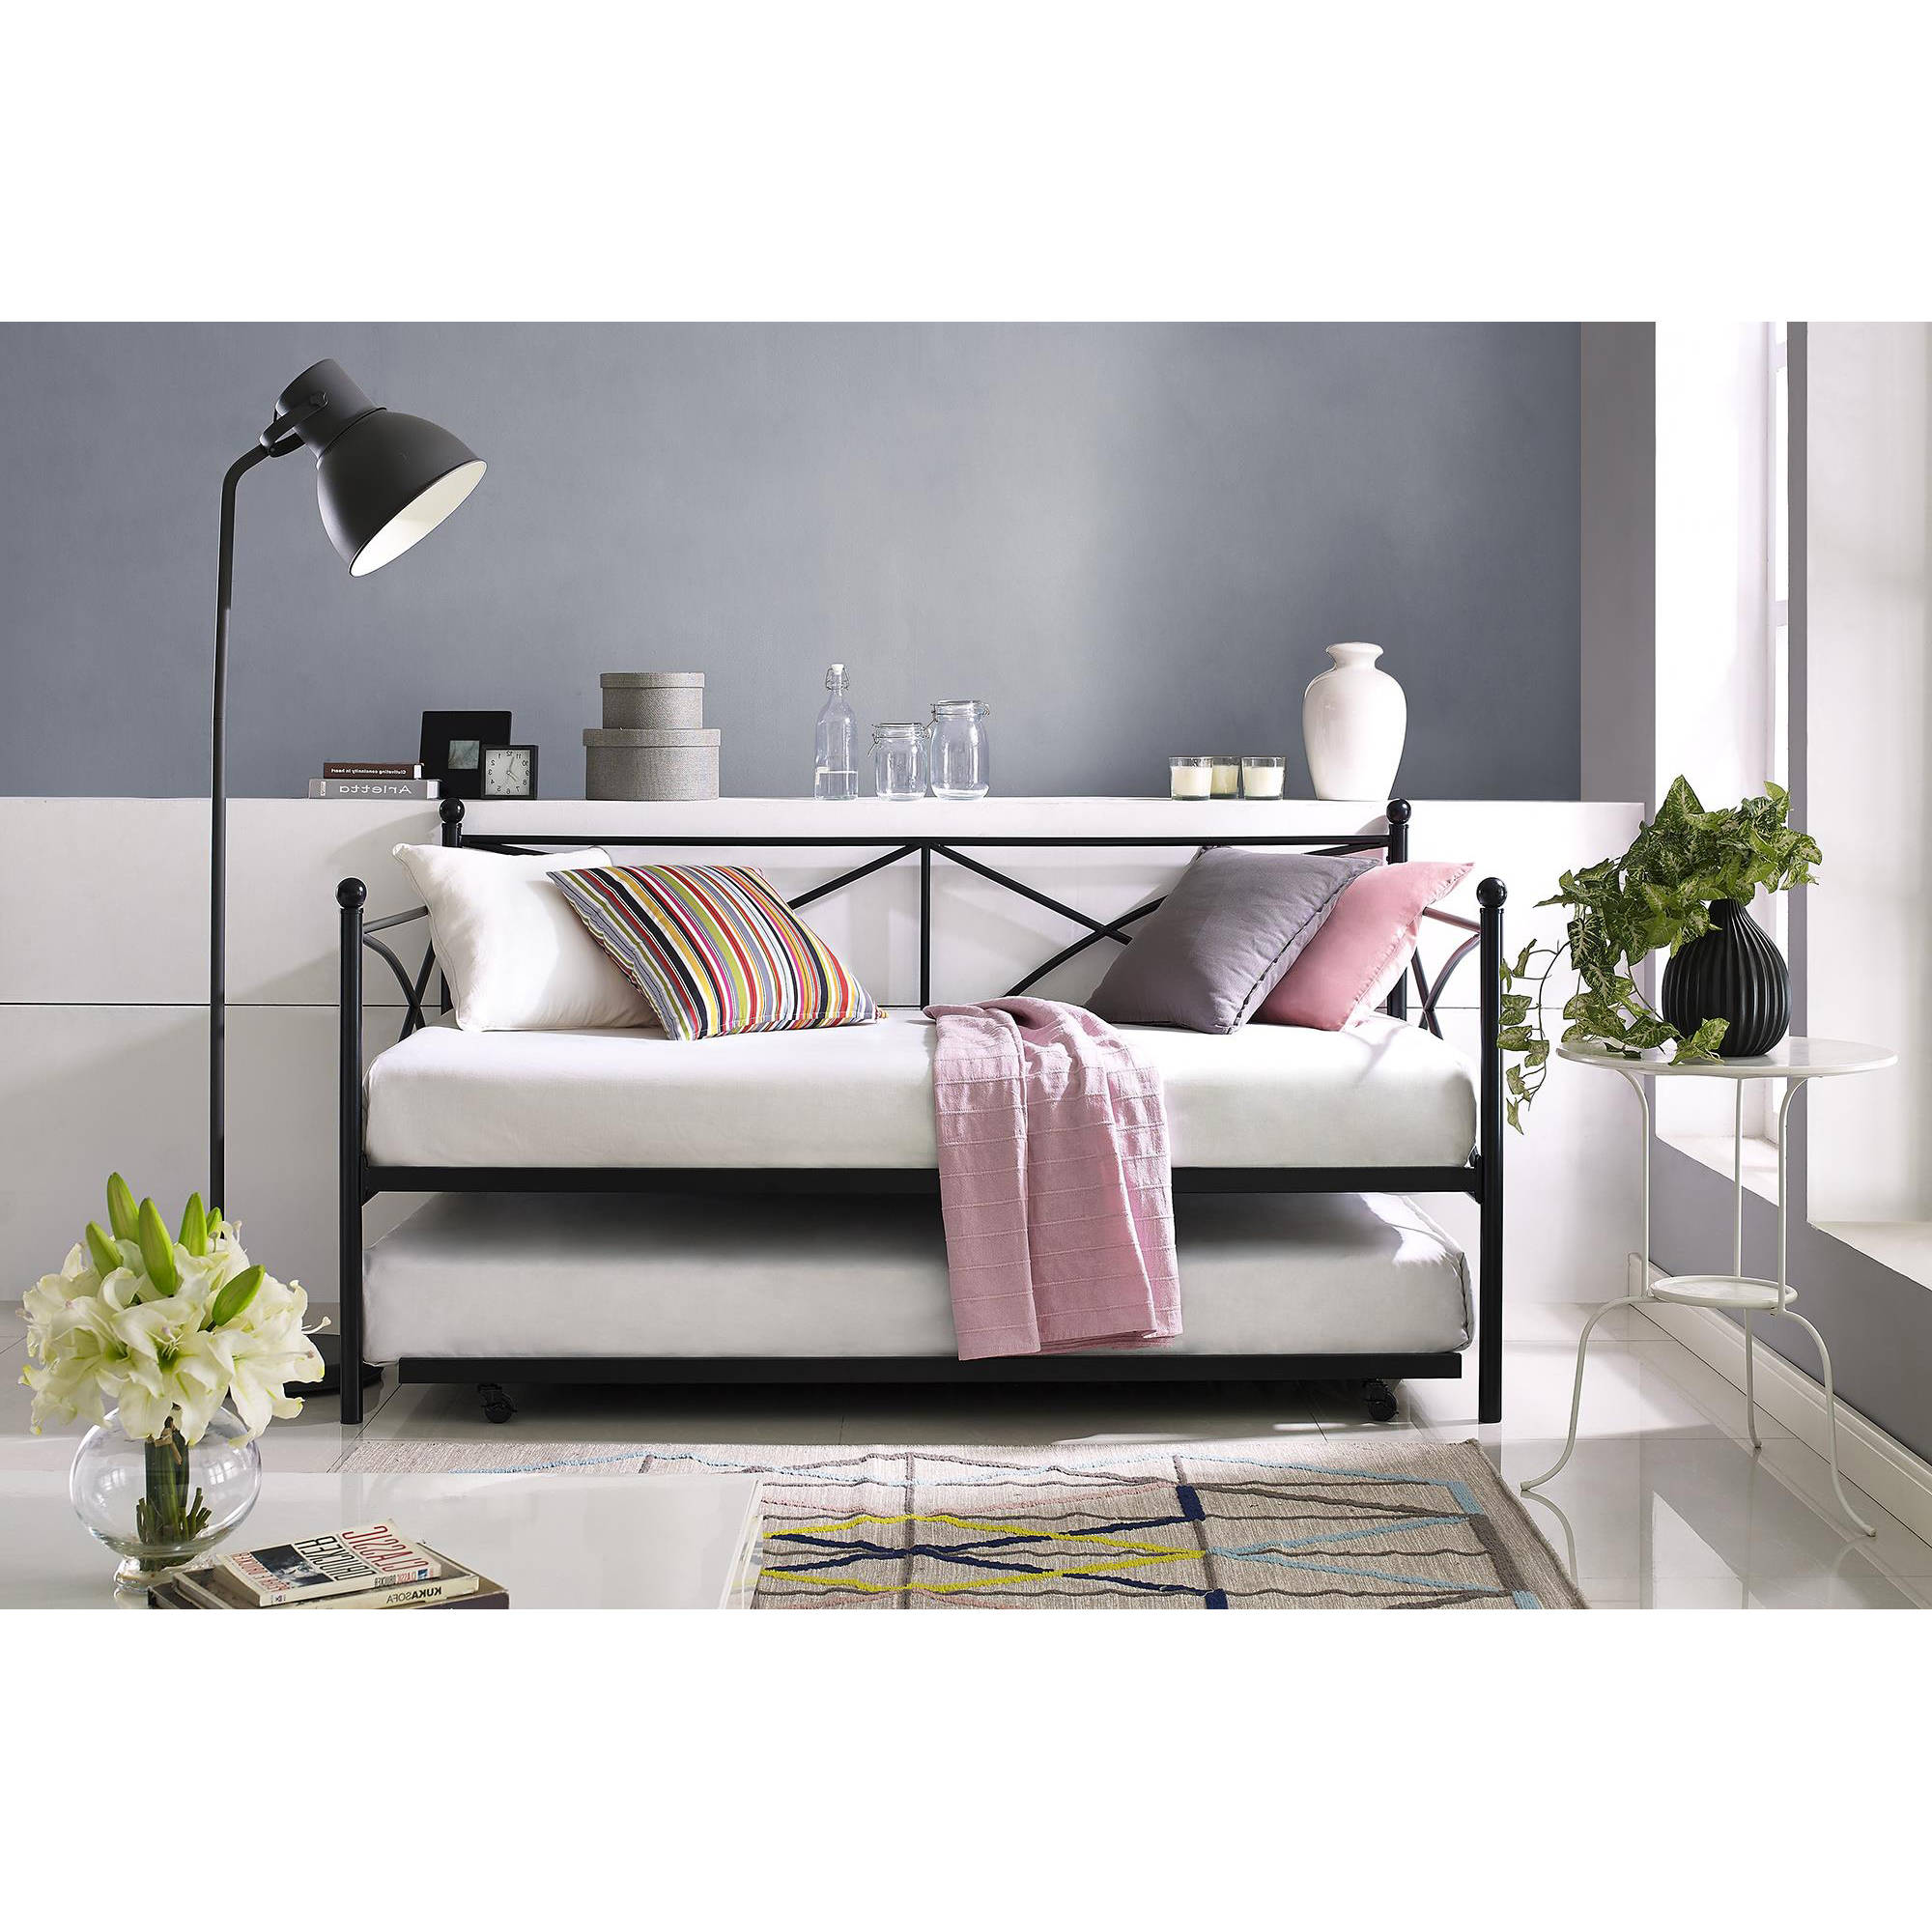 Mainstays Monaco Metal Twin Daybed and Trundle, Black